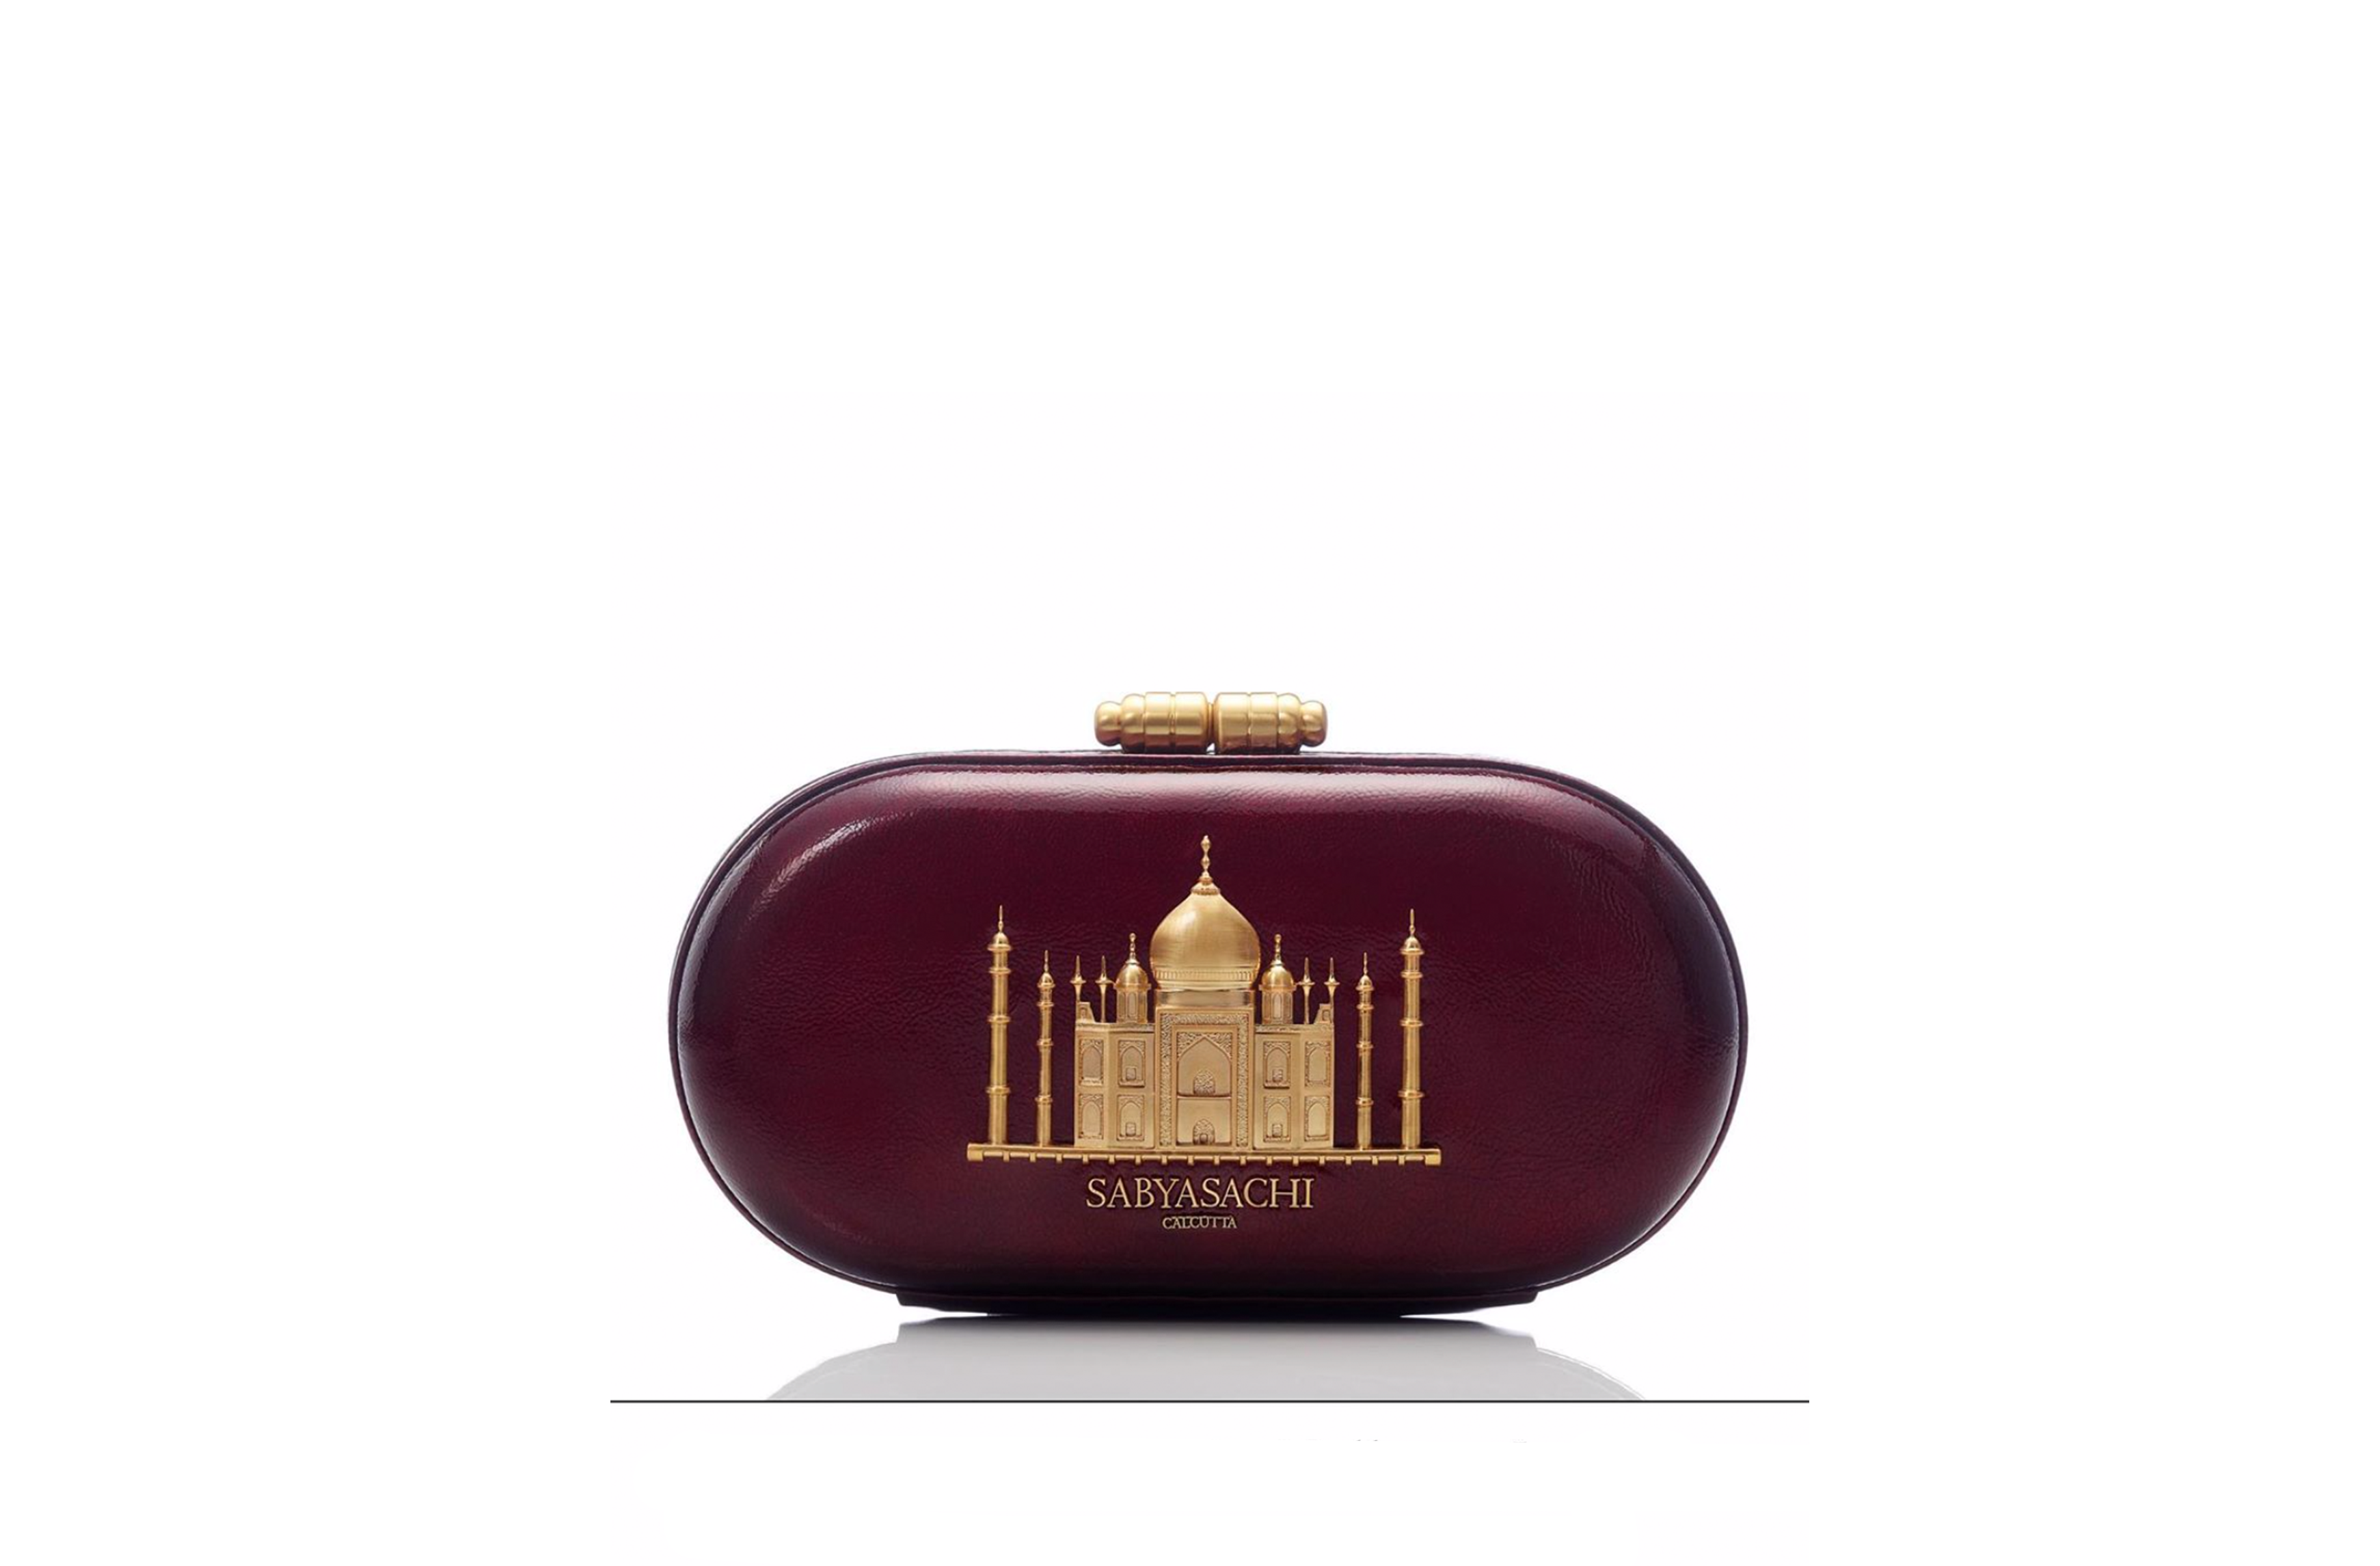 Sabyasachi Taj Minaudiere in Mulberry Clutch - The Grand Trunk